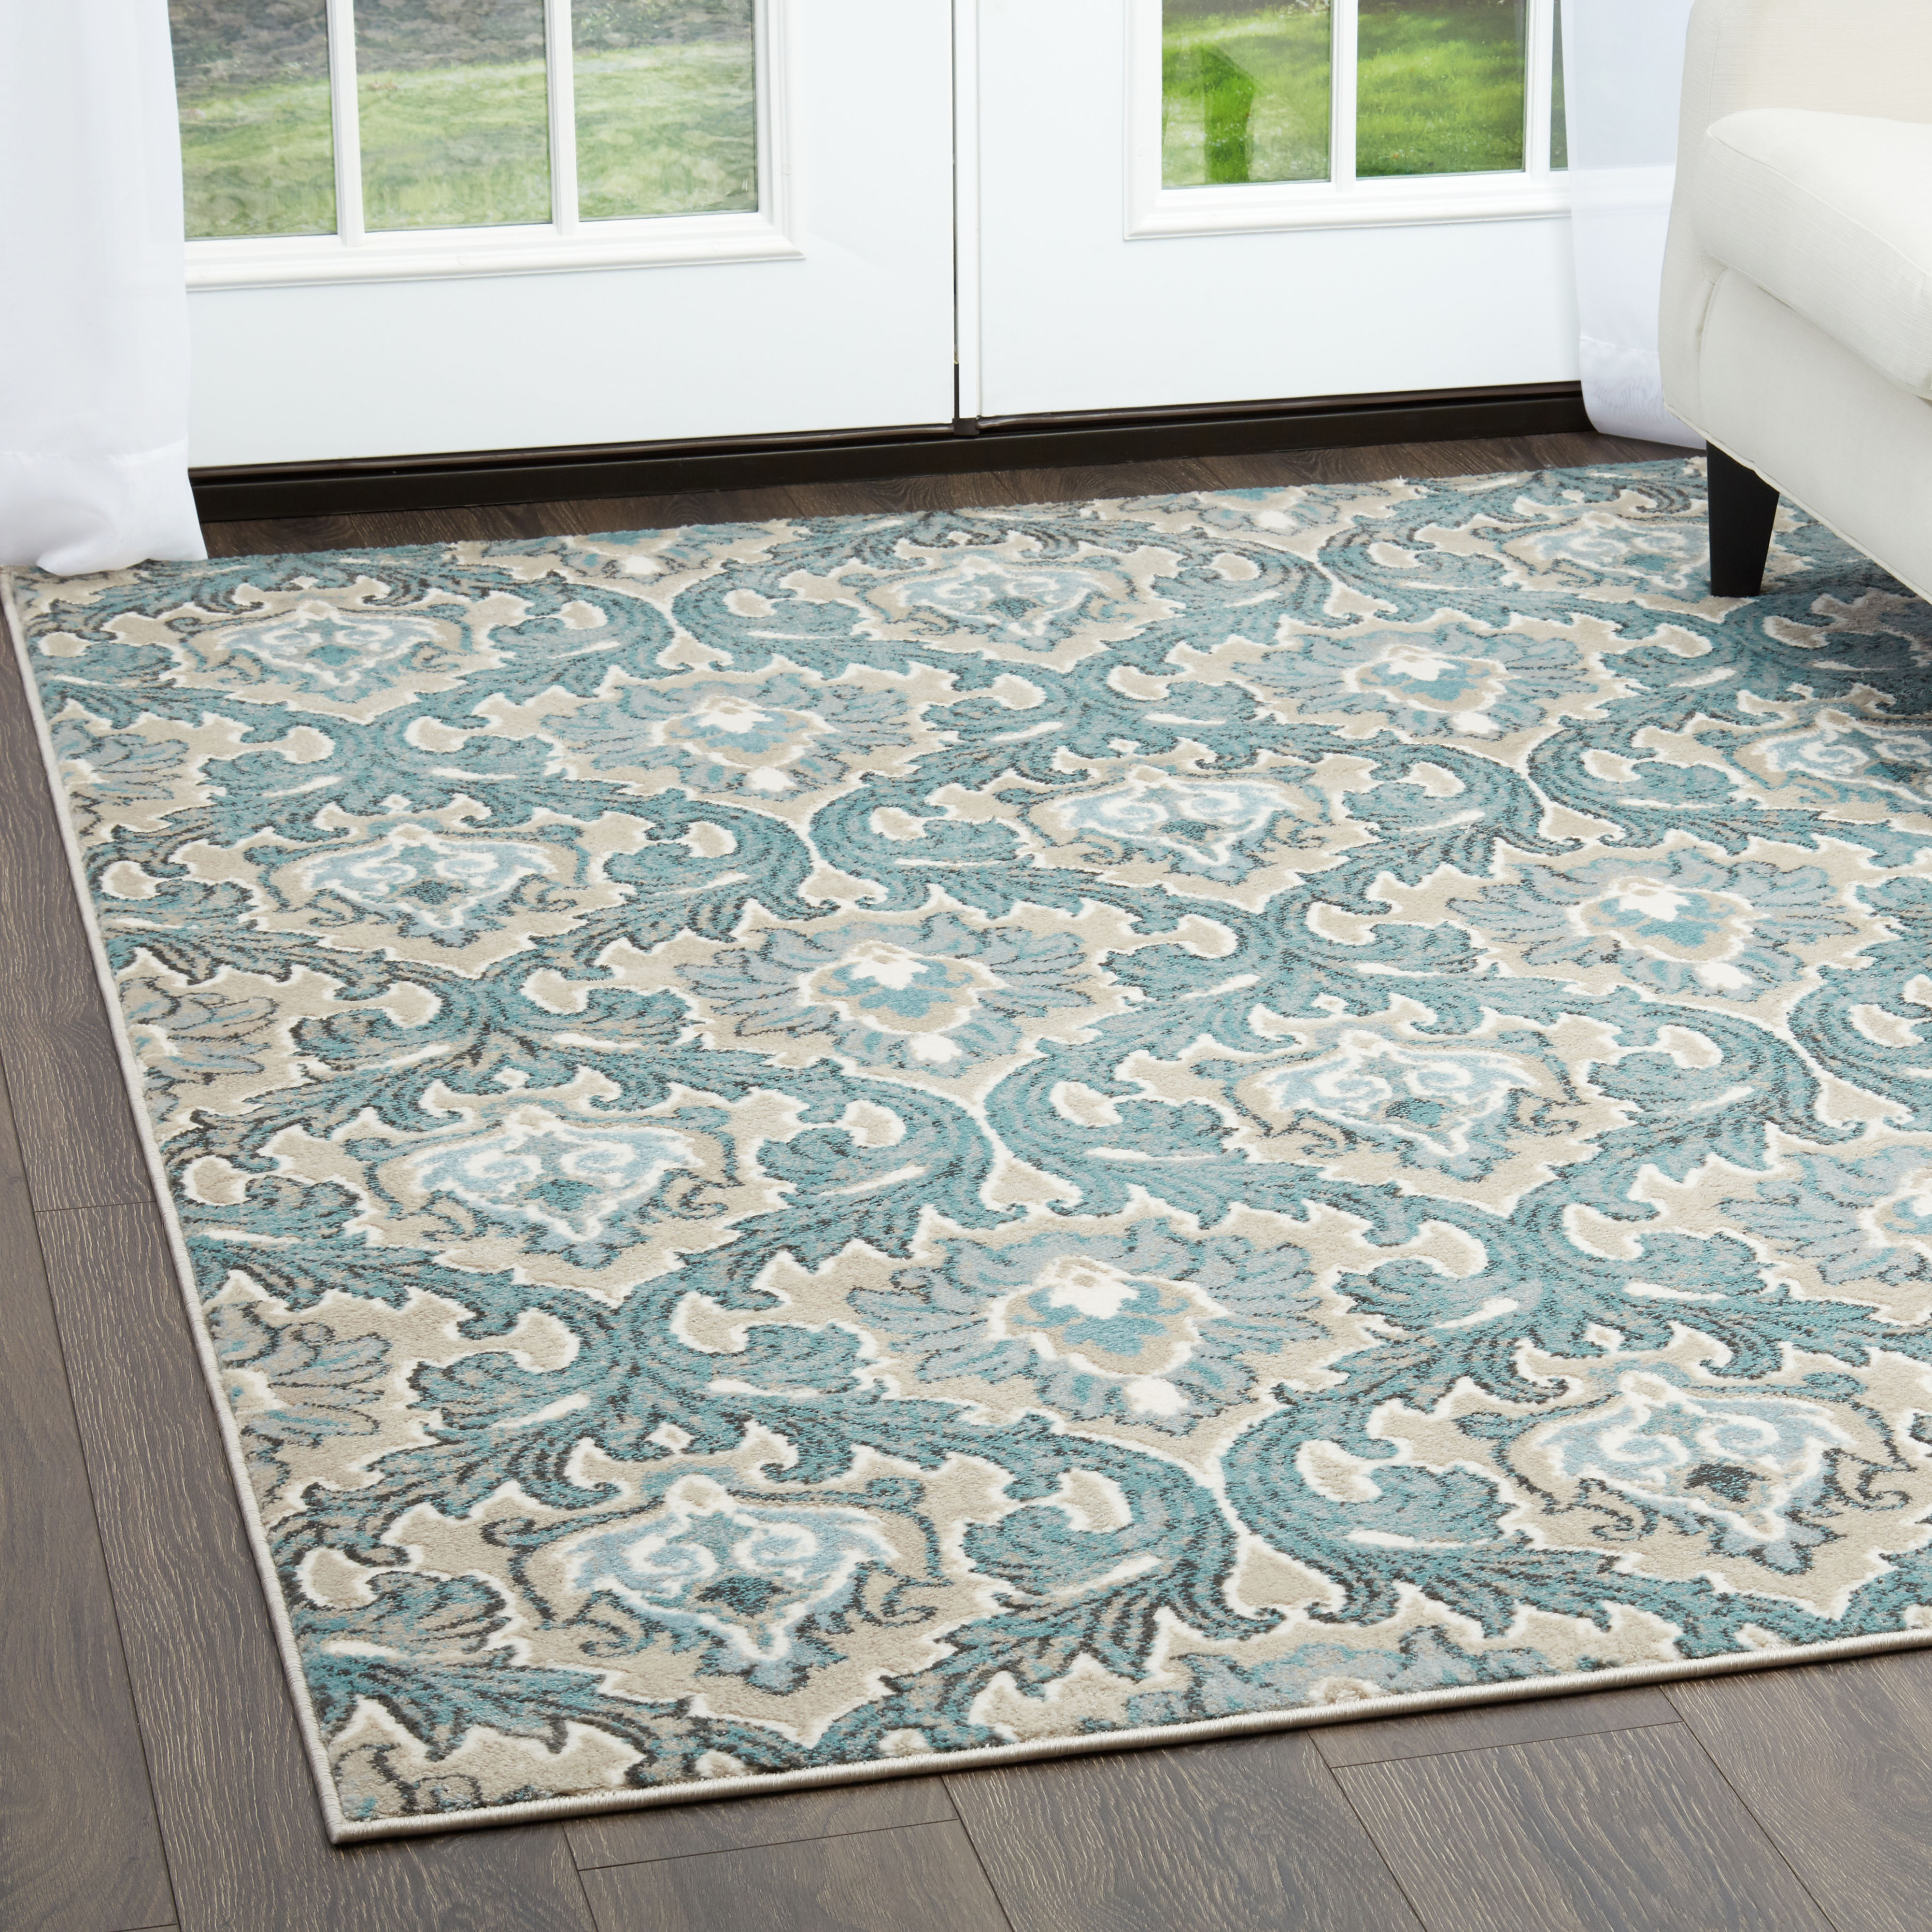 Home Dynamix Oxford Collection Transitional Area Rug For Modern